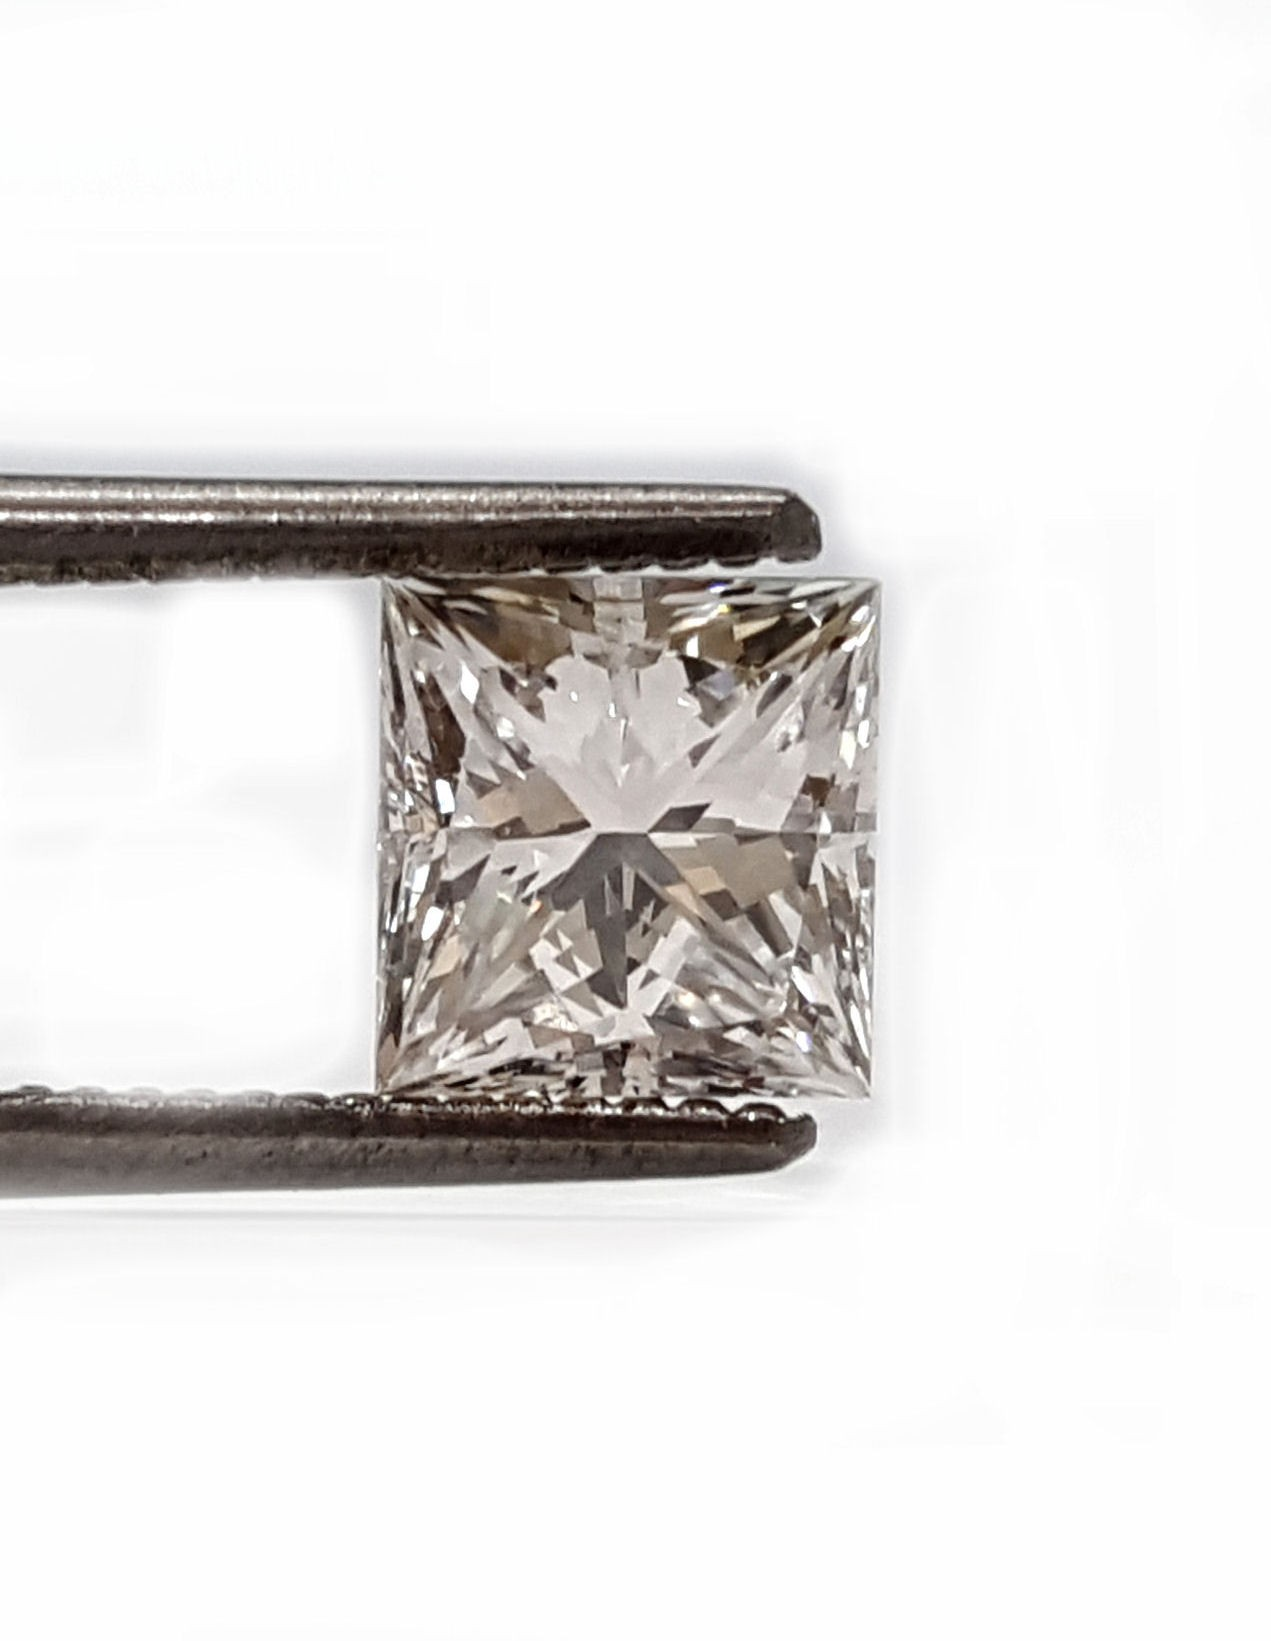 Princess cut diamond 71pts. I VS2 quality